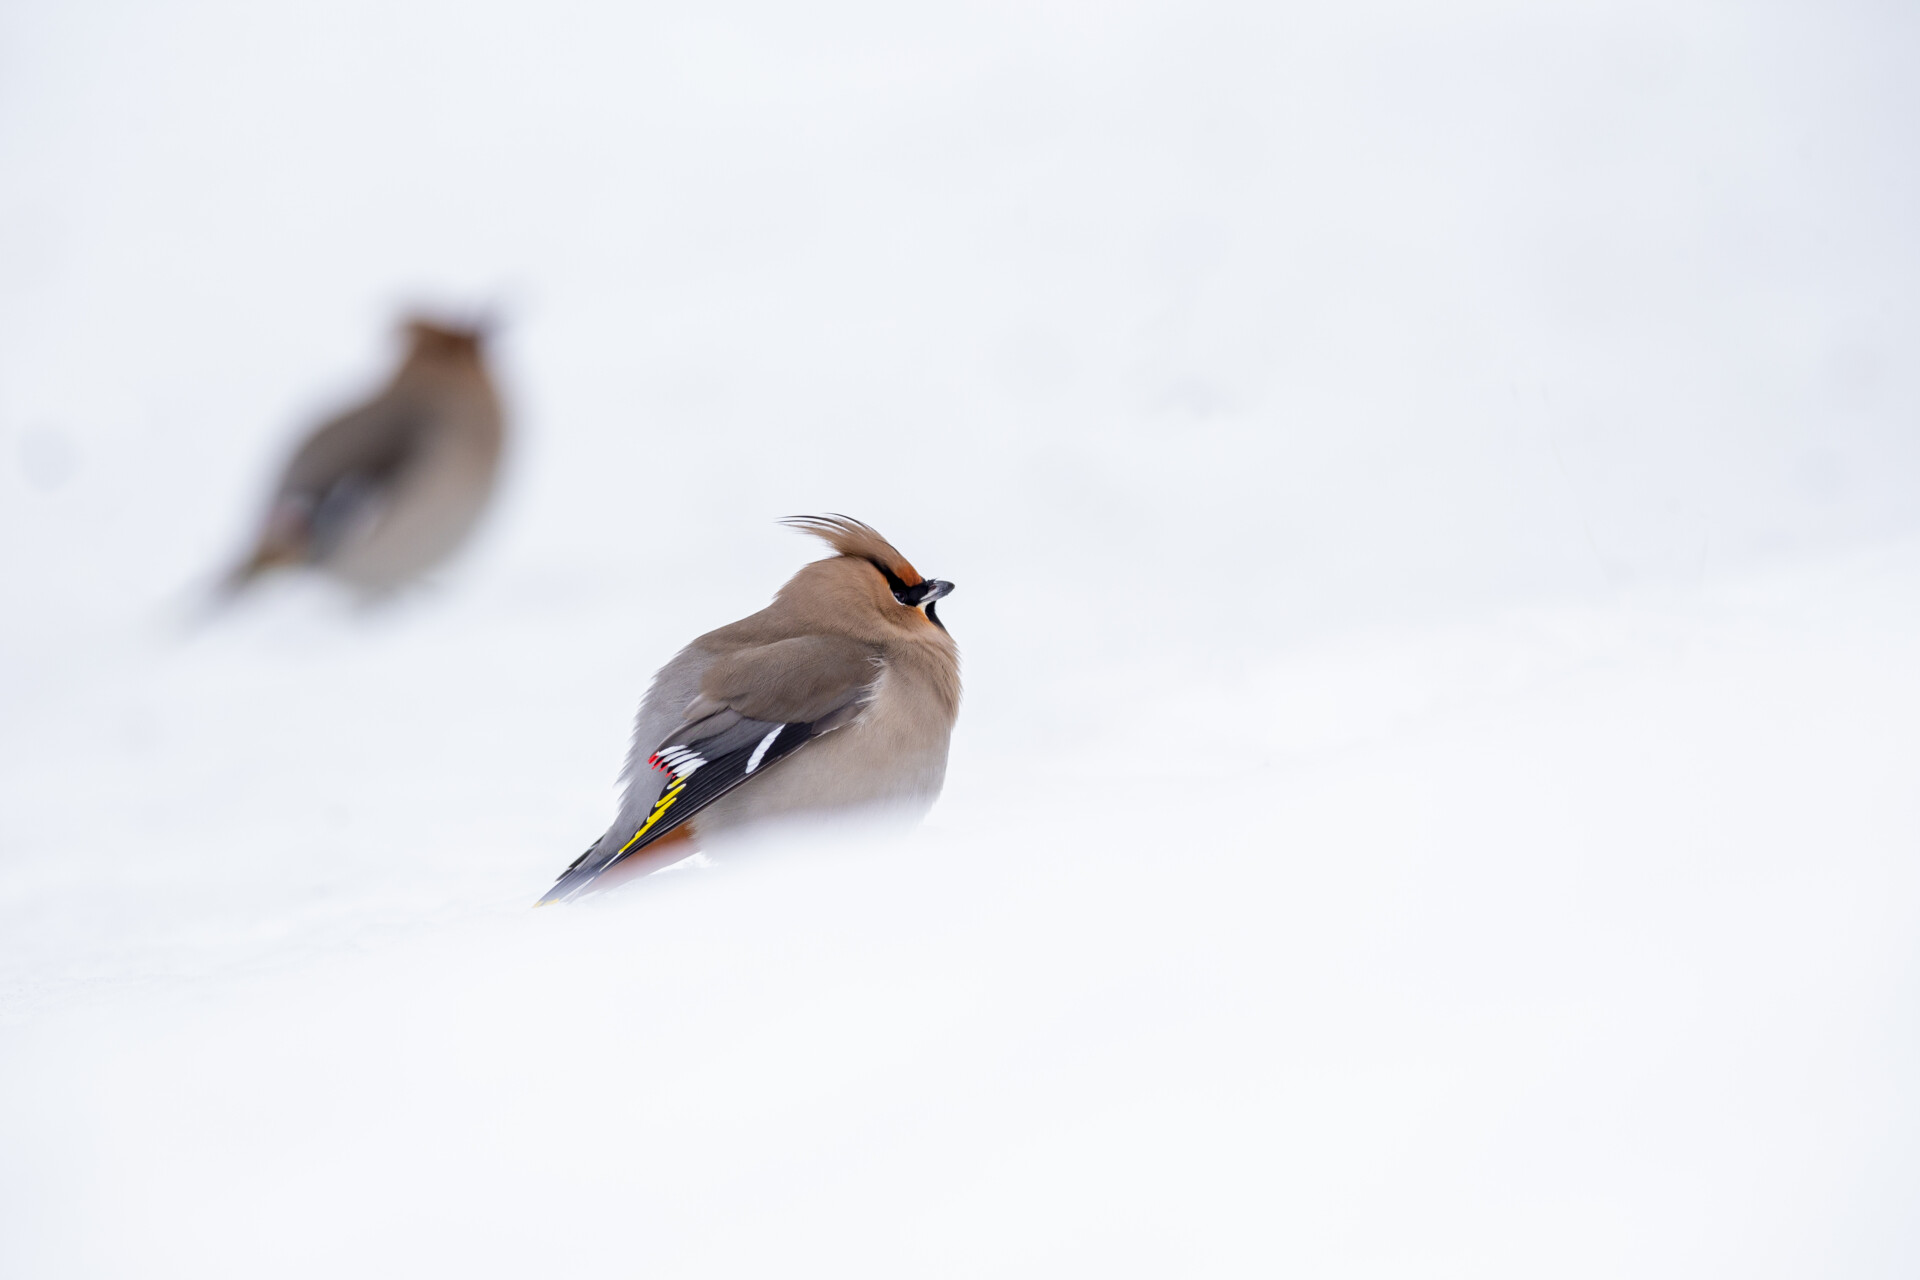 Two waxwing birds in the snow.